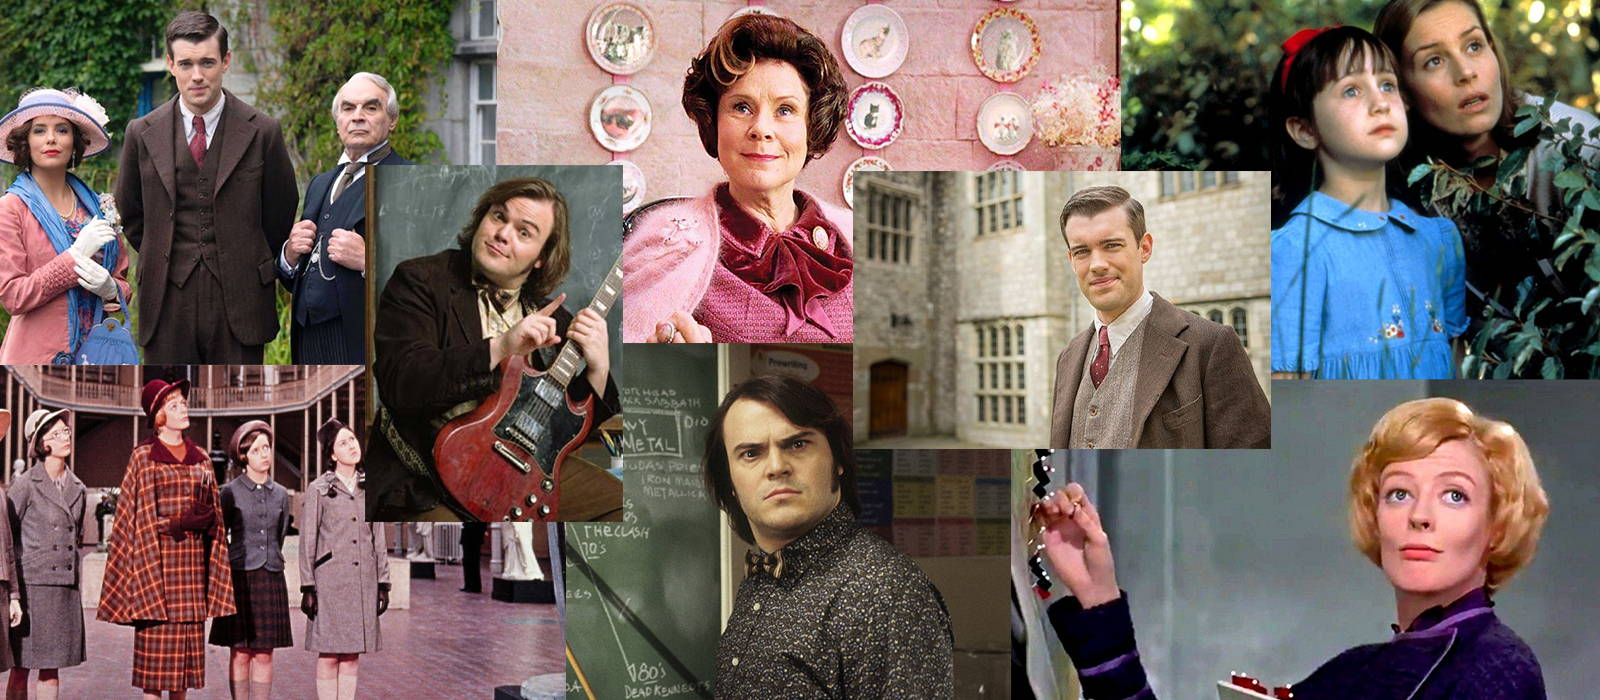 A collection of images depicting famous teachers from films and TV.